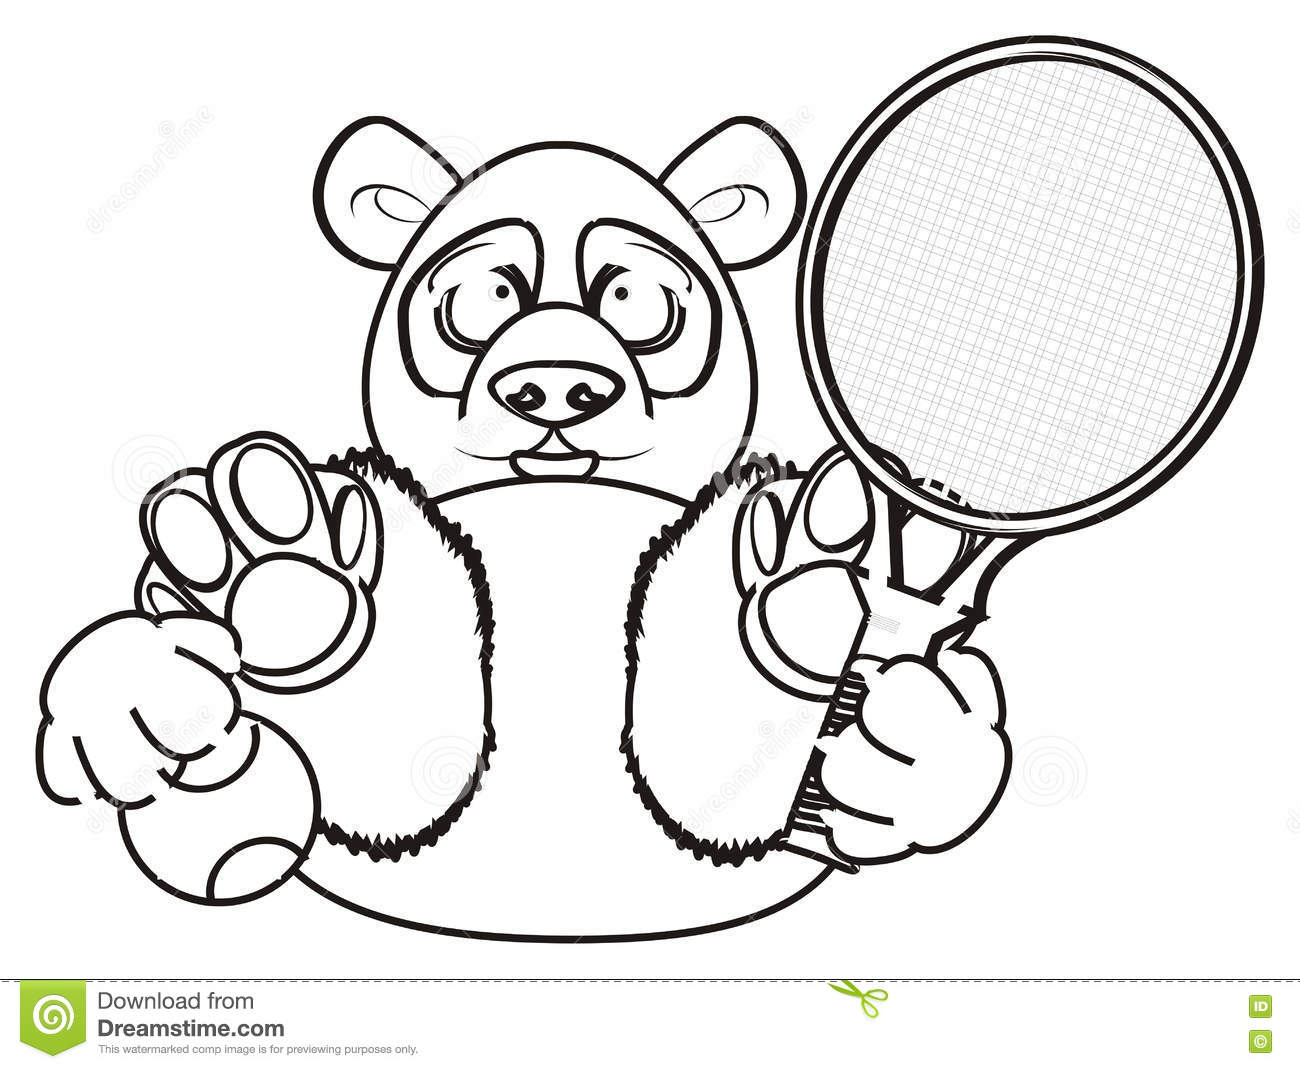 Jeu de panda de coloration au tennis